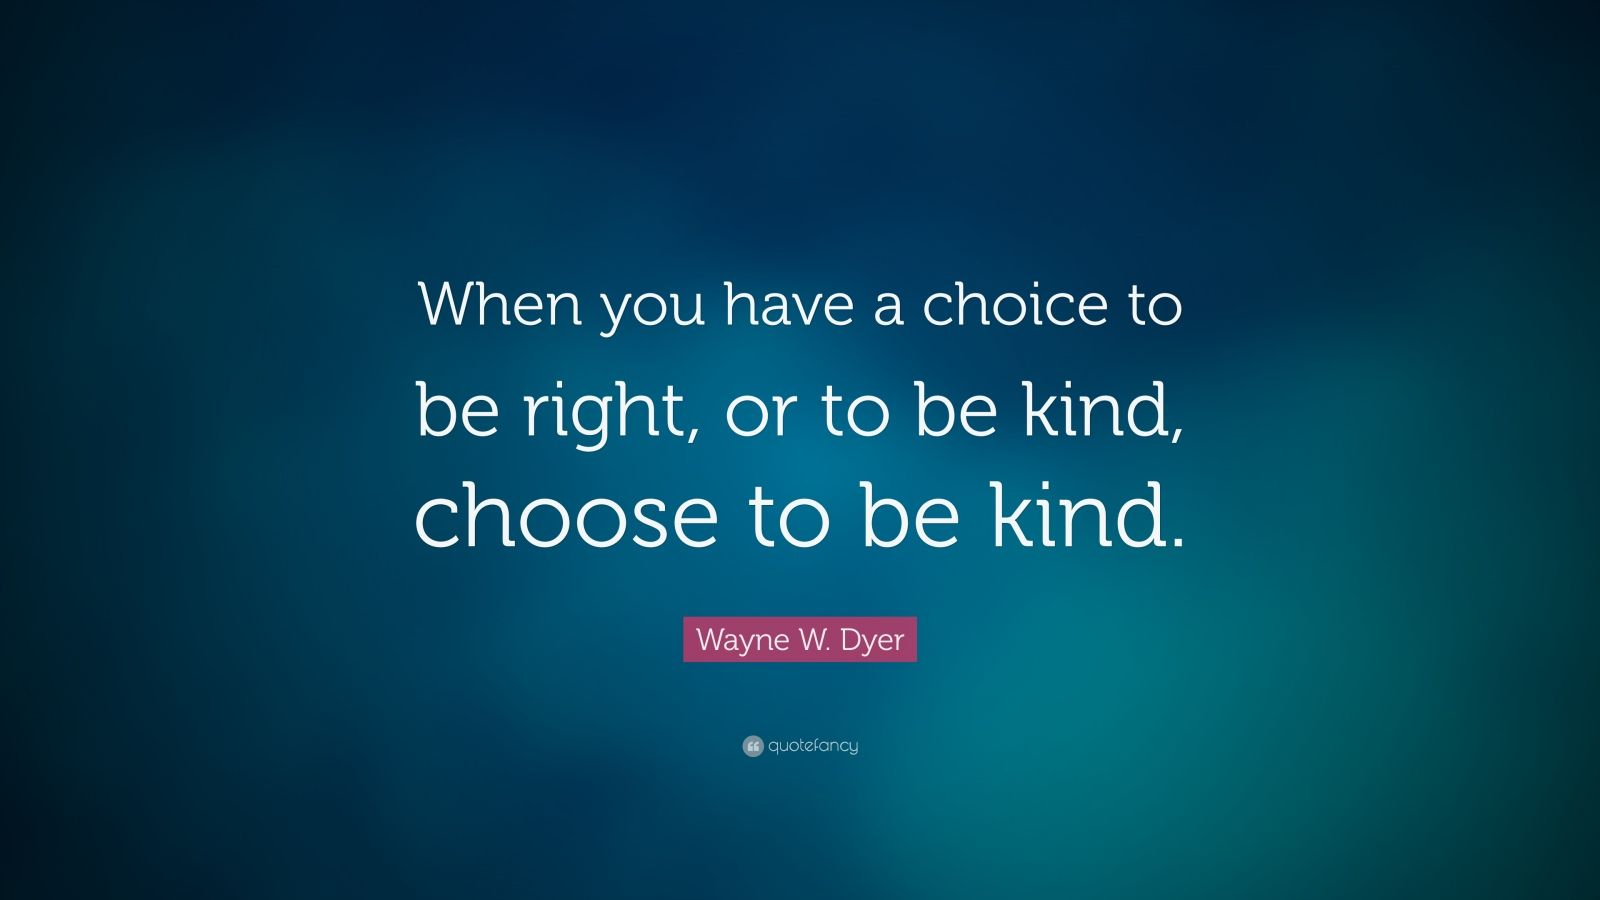 """Wayne W. Dyer Quote: """"When you have a choice to be right, or to be kind, choose to be kind."""""""